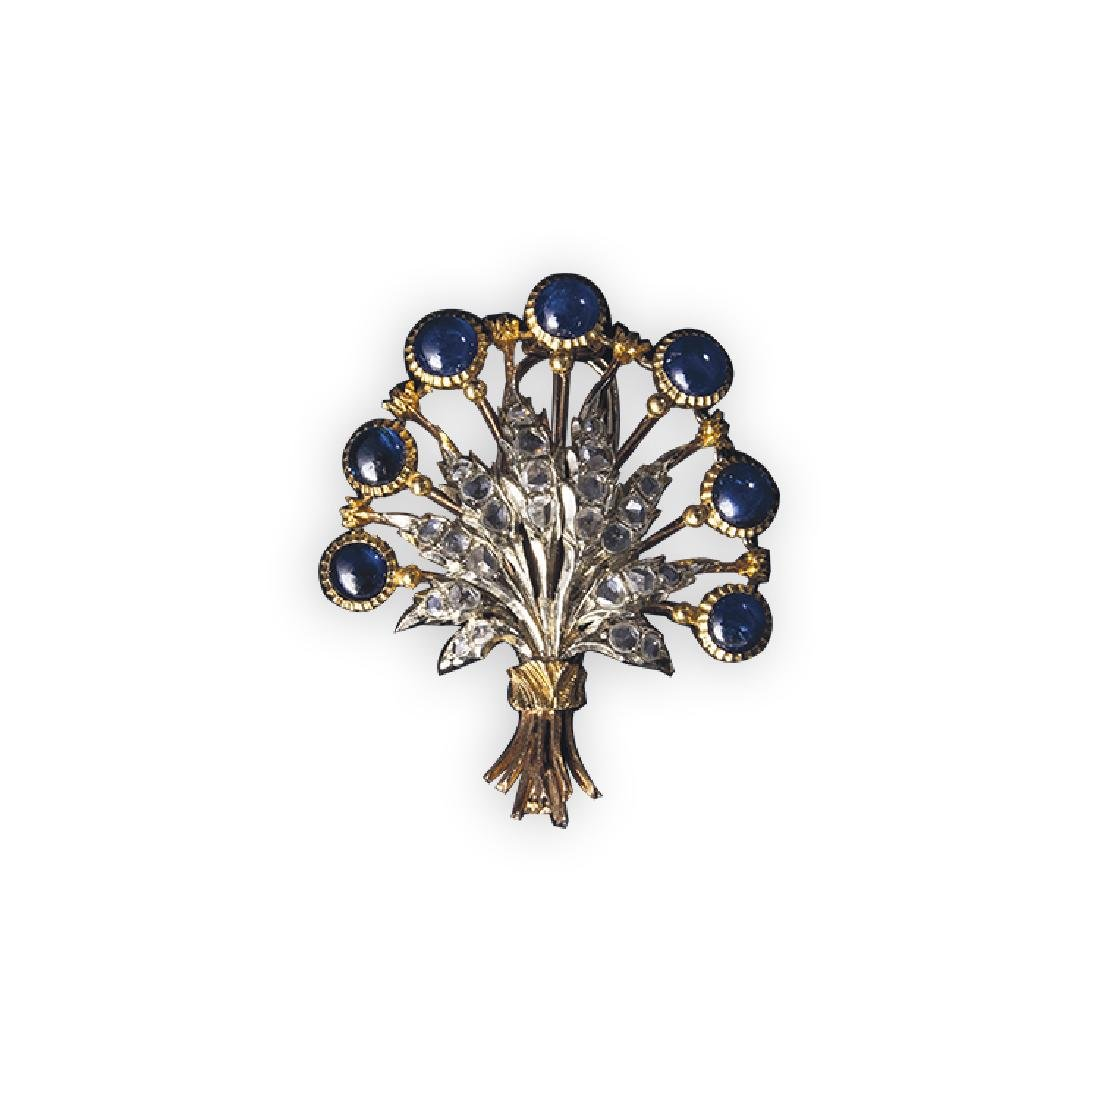 BUCCELLATI brooch with sapphires and diamonds